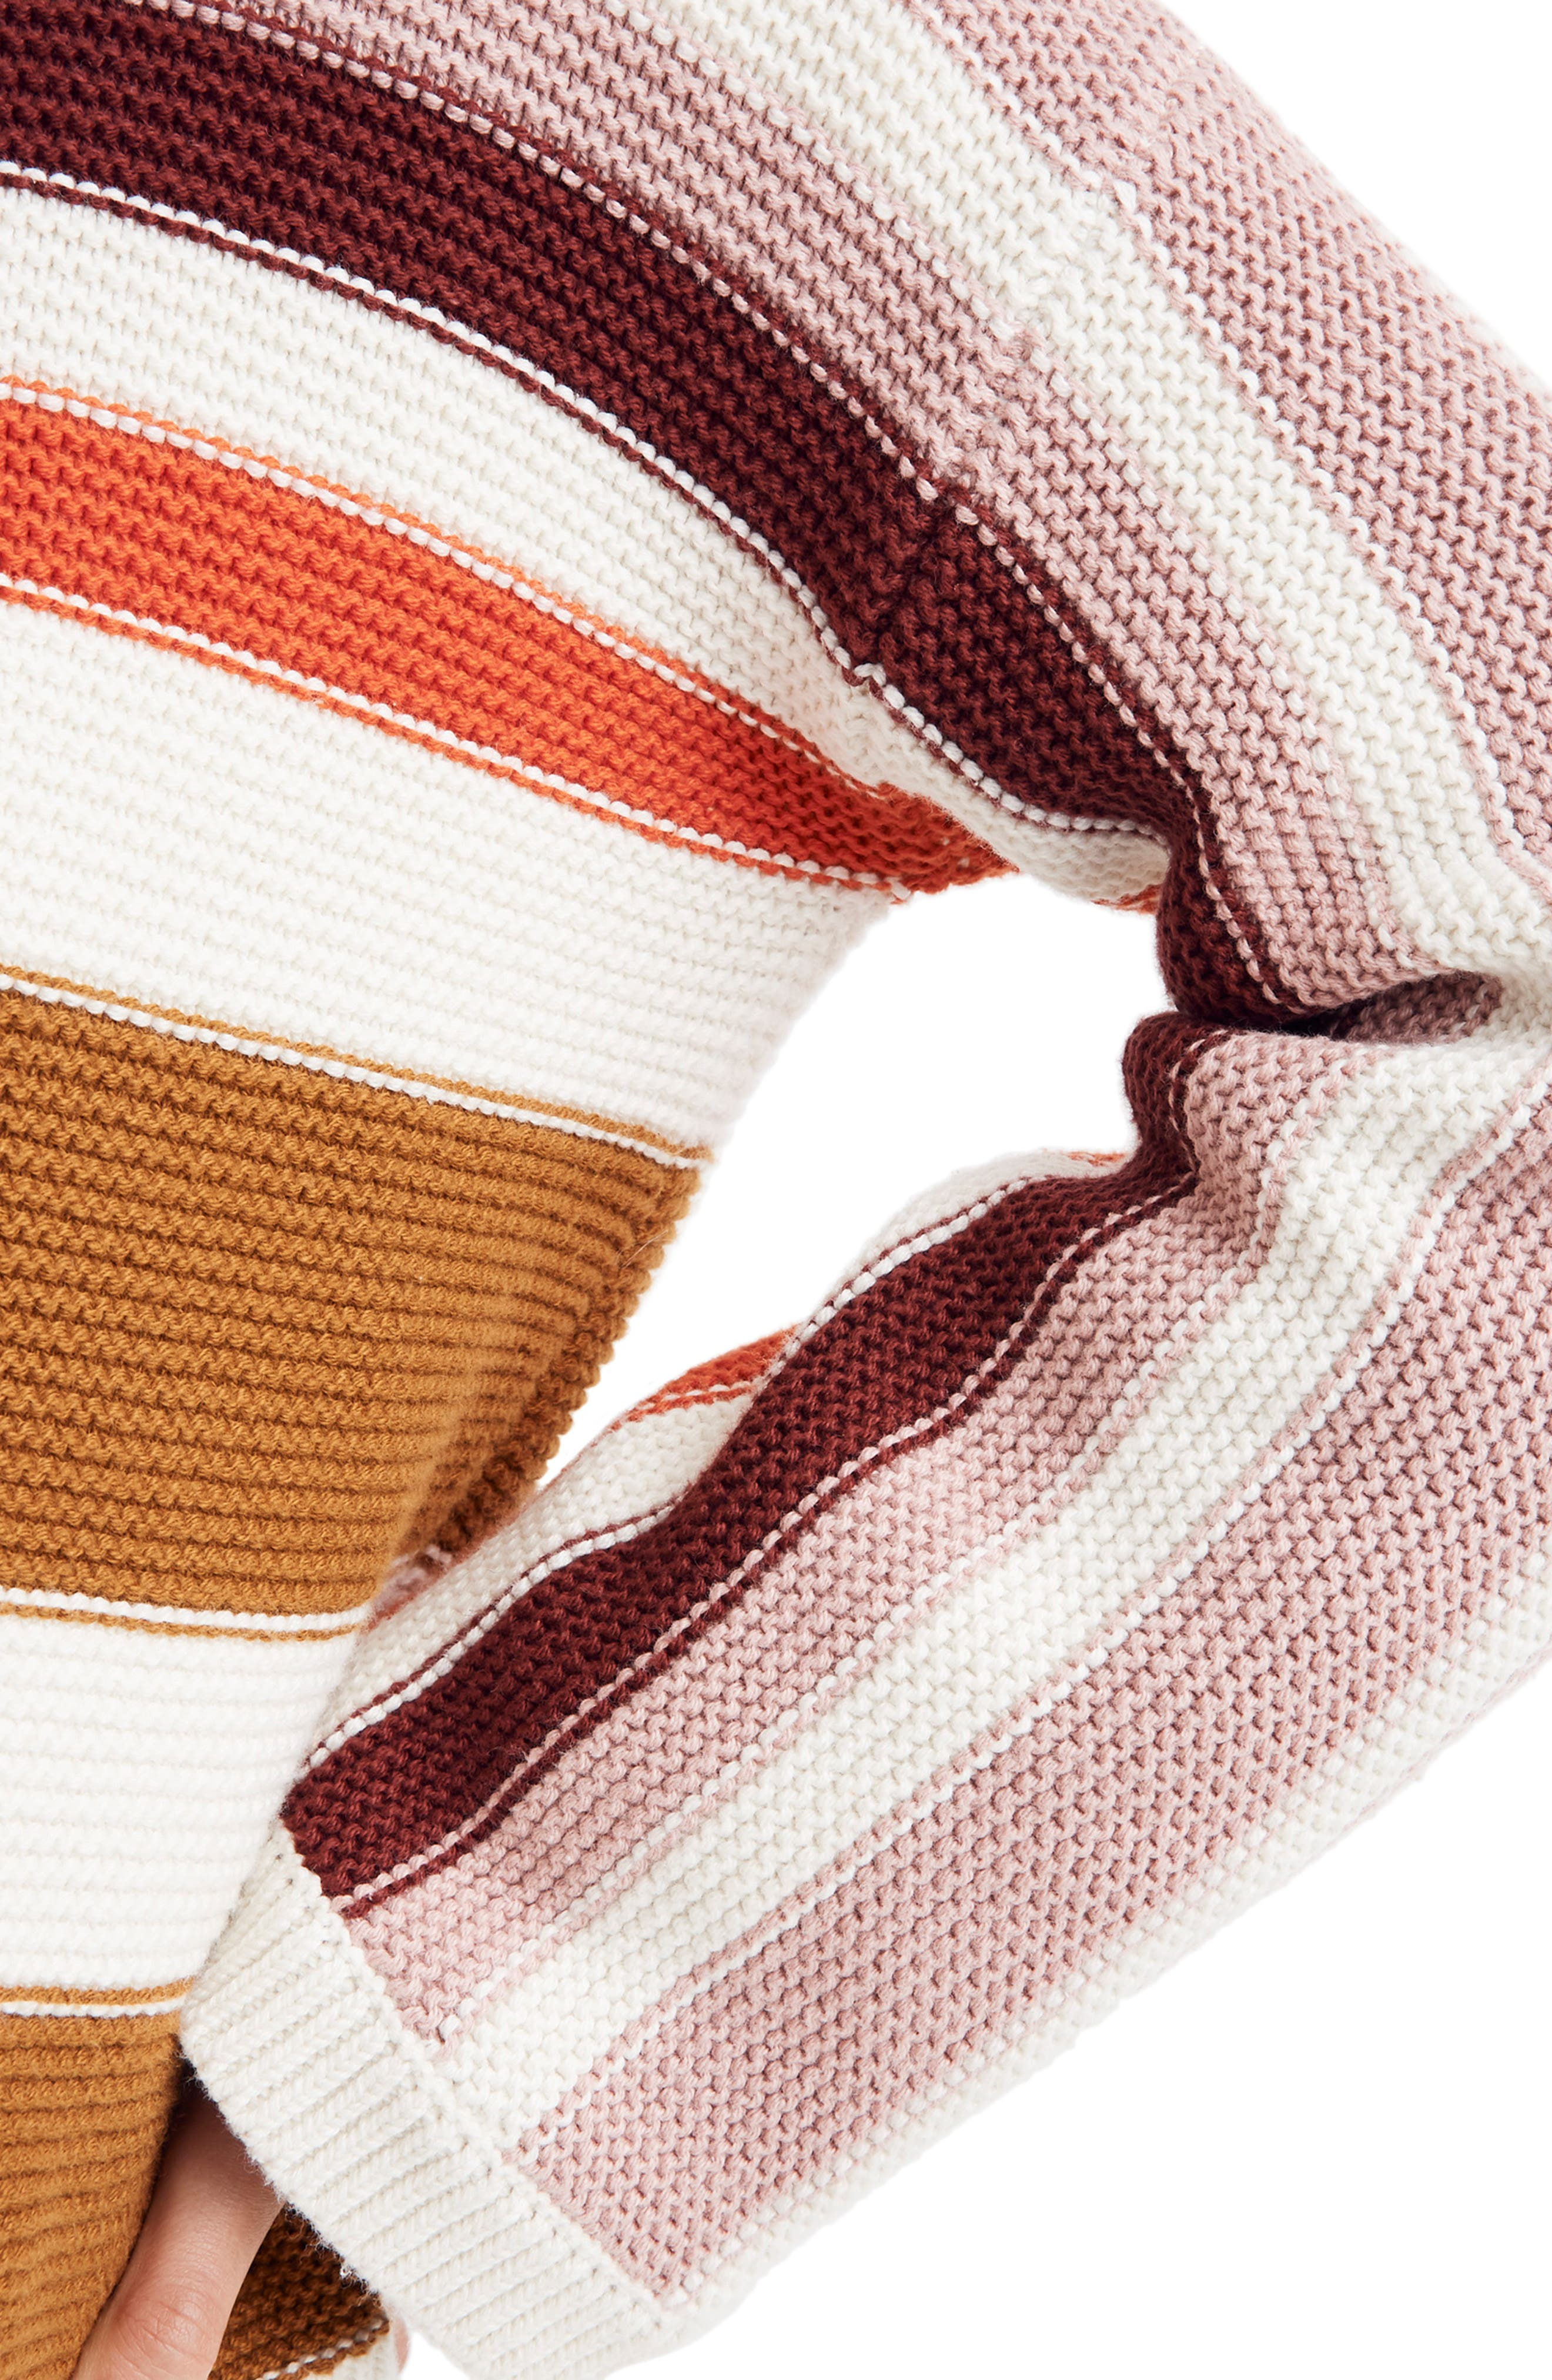 MADEWELL,                             Valleyscape Stripe Pullover Sweater,                             Alternate thumbnail 4, color,                             NATURAL